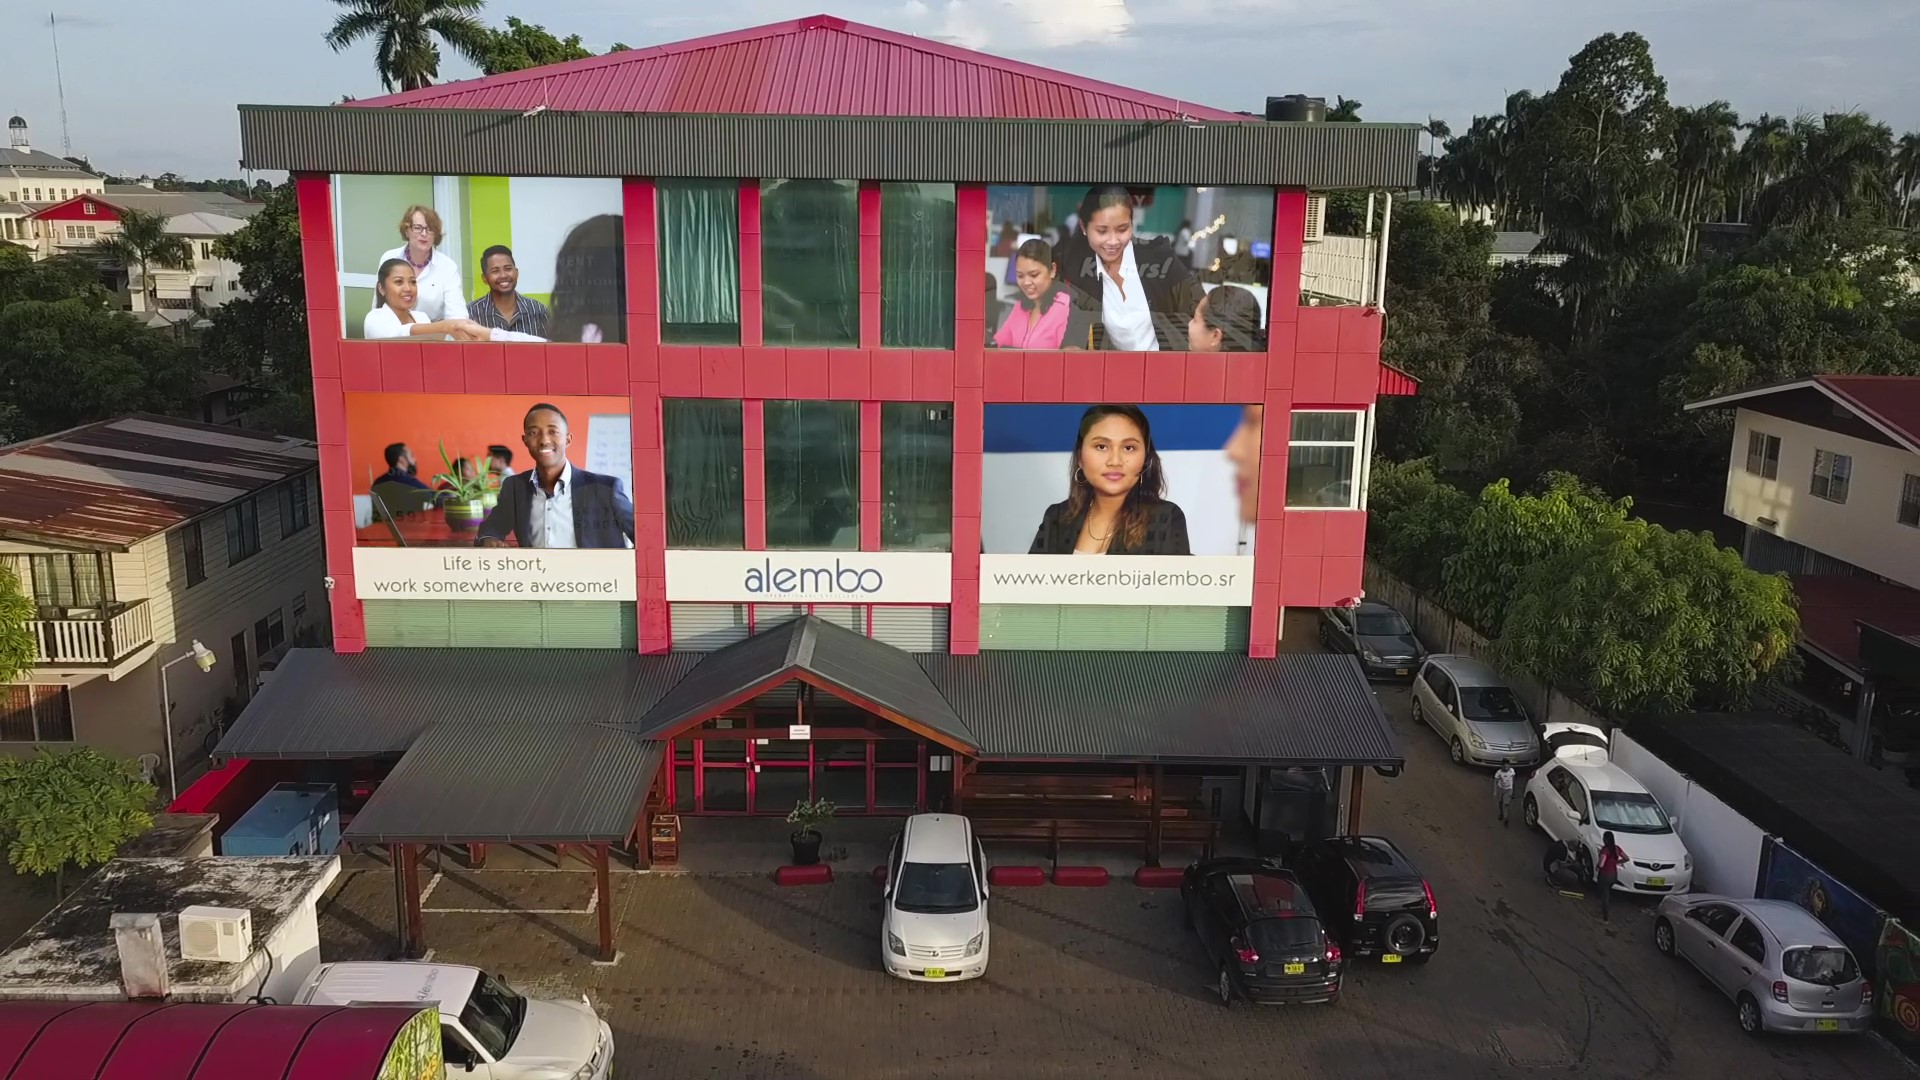 offshoring suriname bedrijf alembo